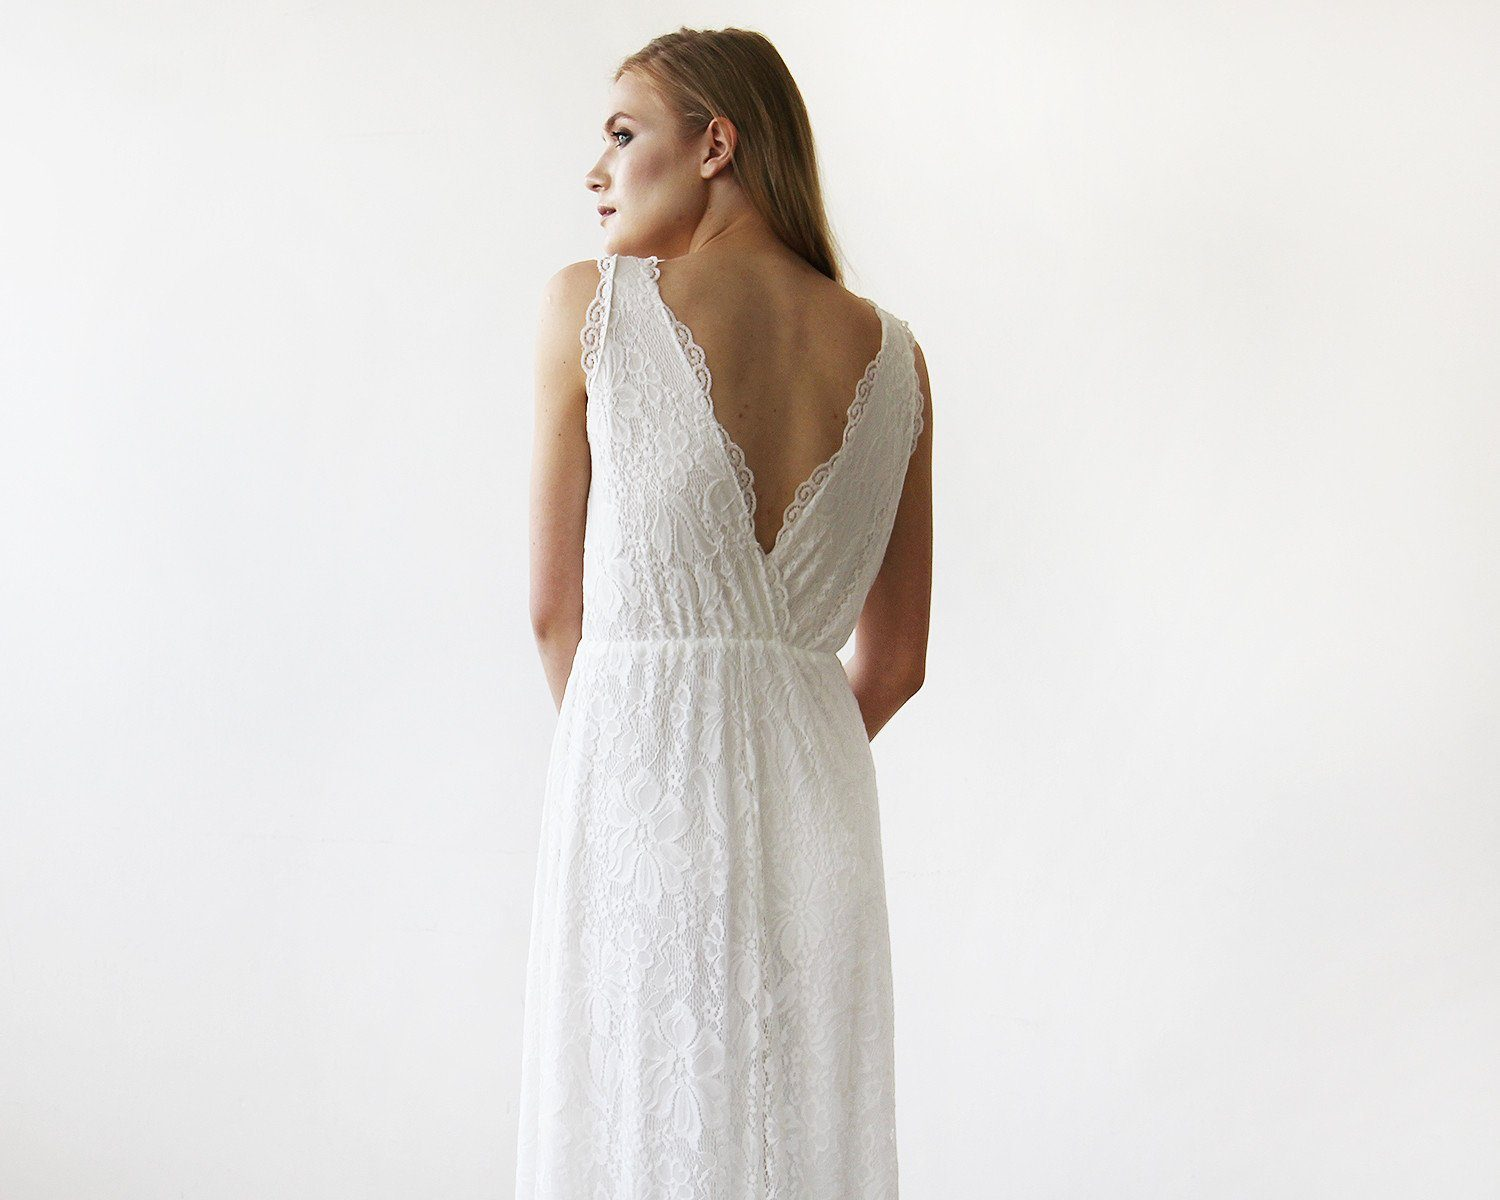 Sleeveless Ivory Lace Wedding Gown 1150